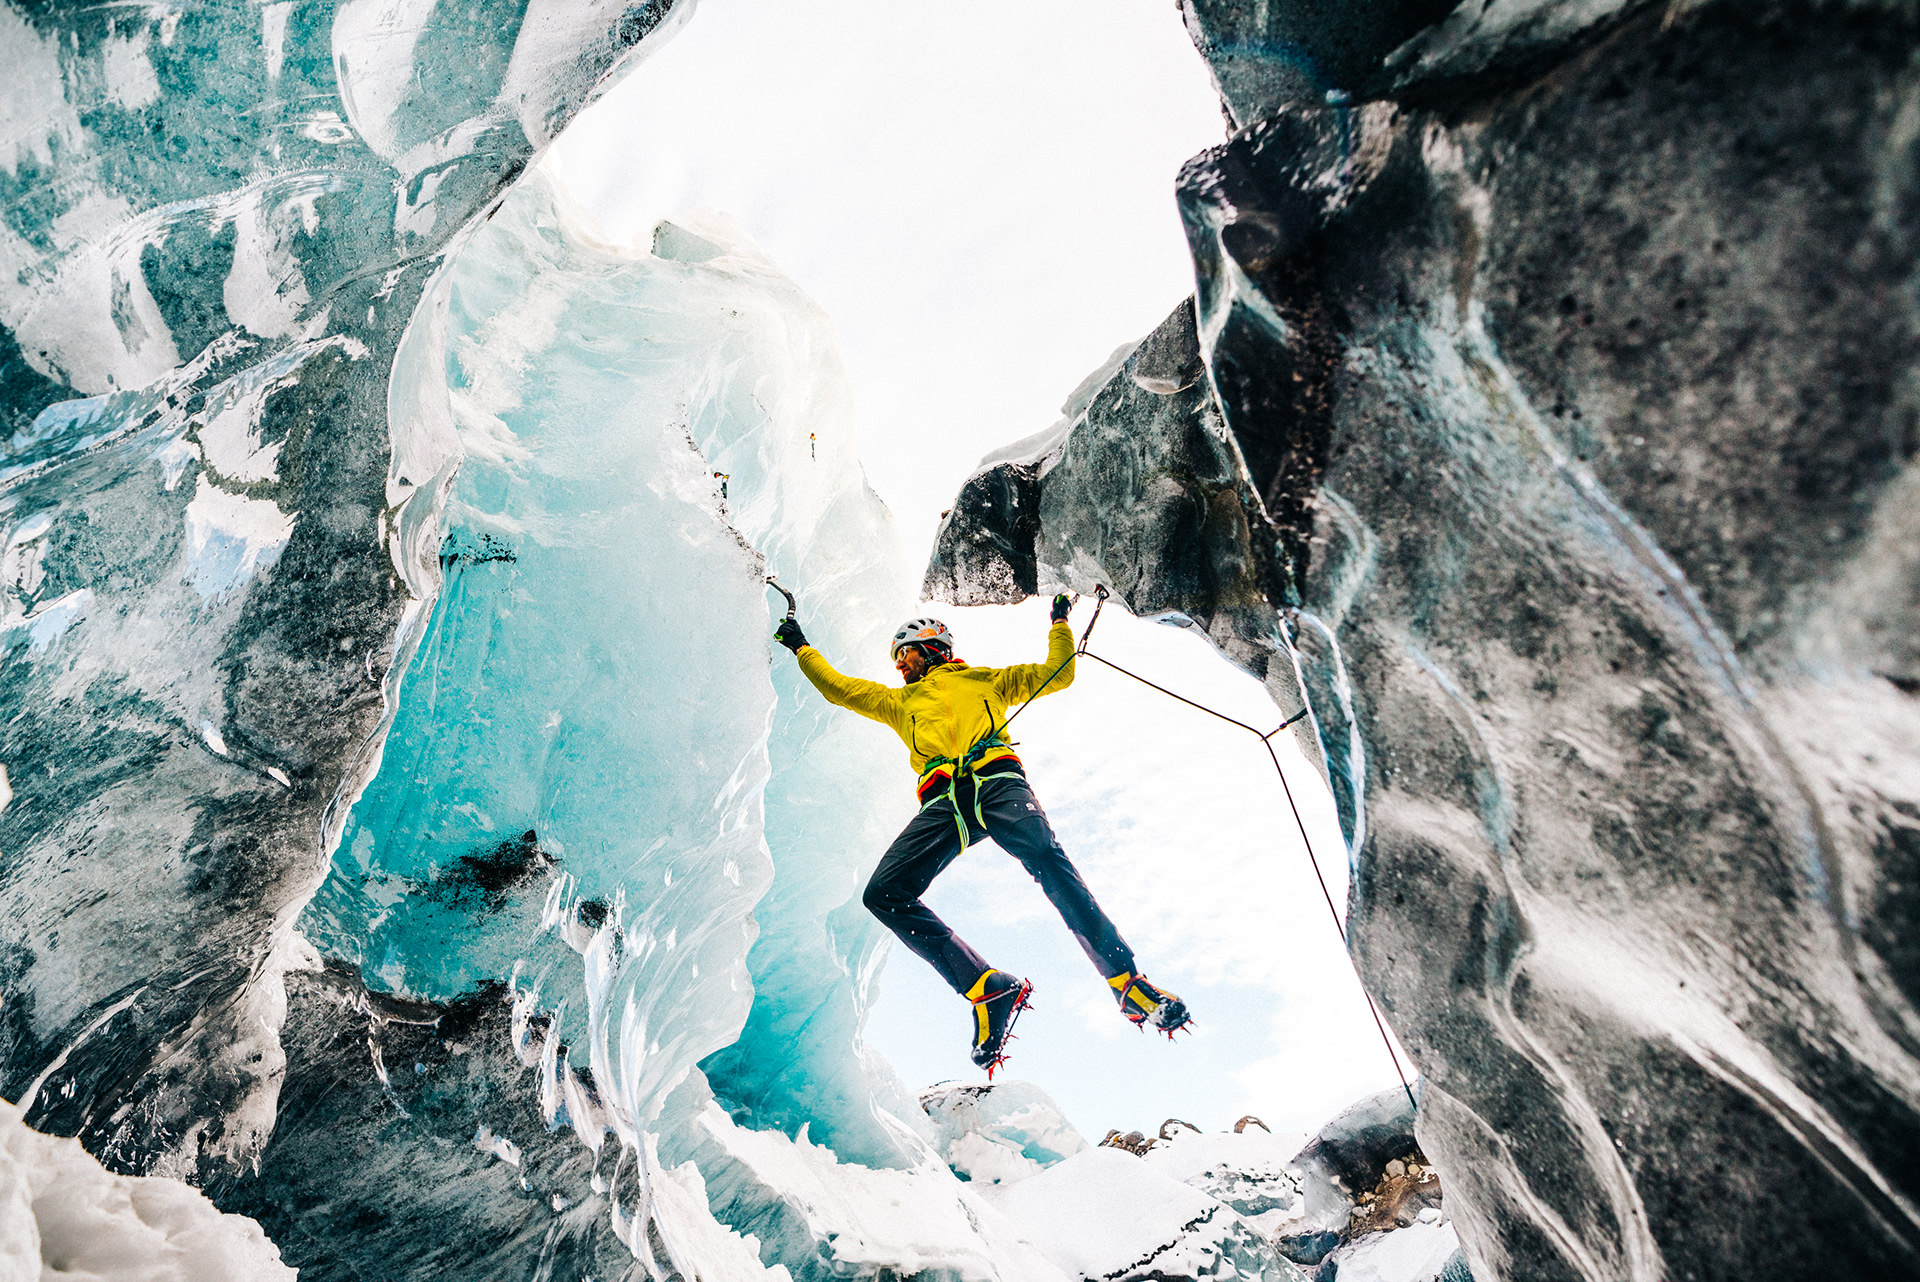 The North Face selects apple tree communications